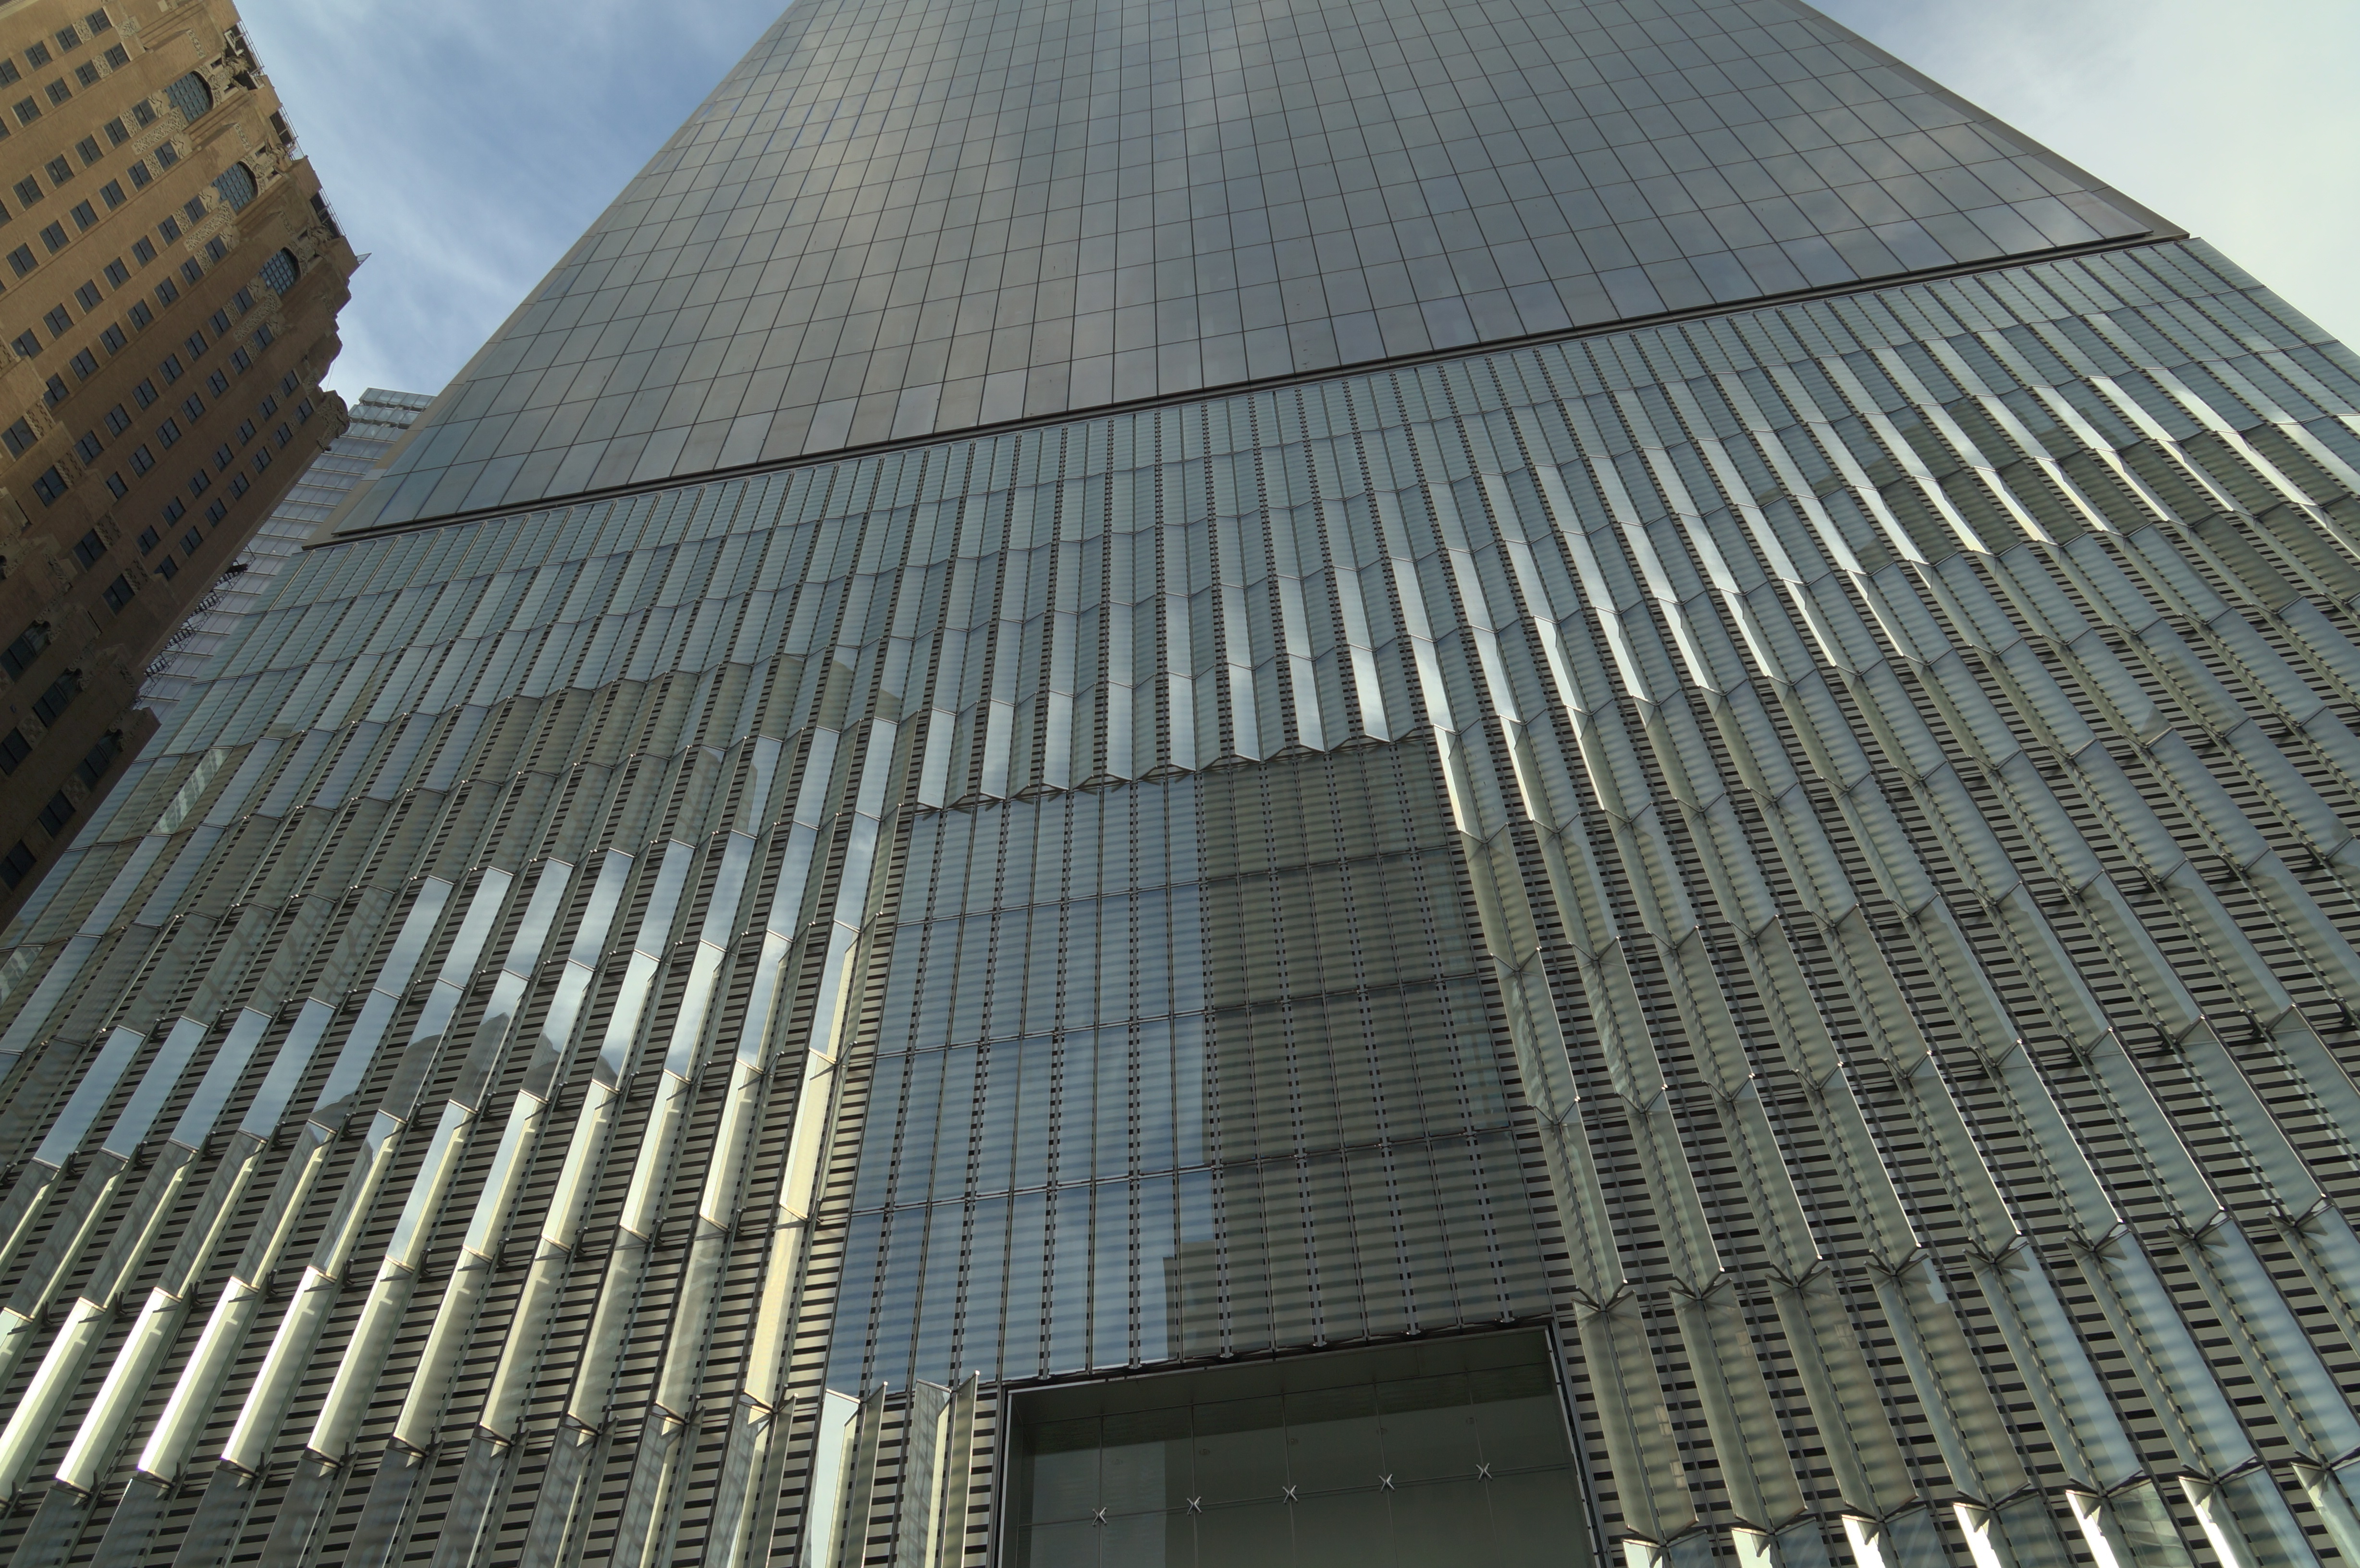 Angled glass fins protrude from stainless steel panels on the 185-foot tall concrete base of One World Trade Center. This base houses mechanical equipment and is designed to protect the building against ground-level explosions. (Lee Powell/TWP)